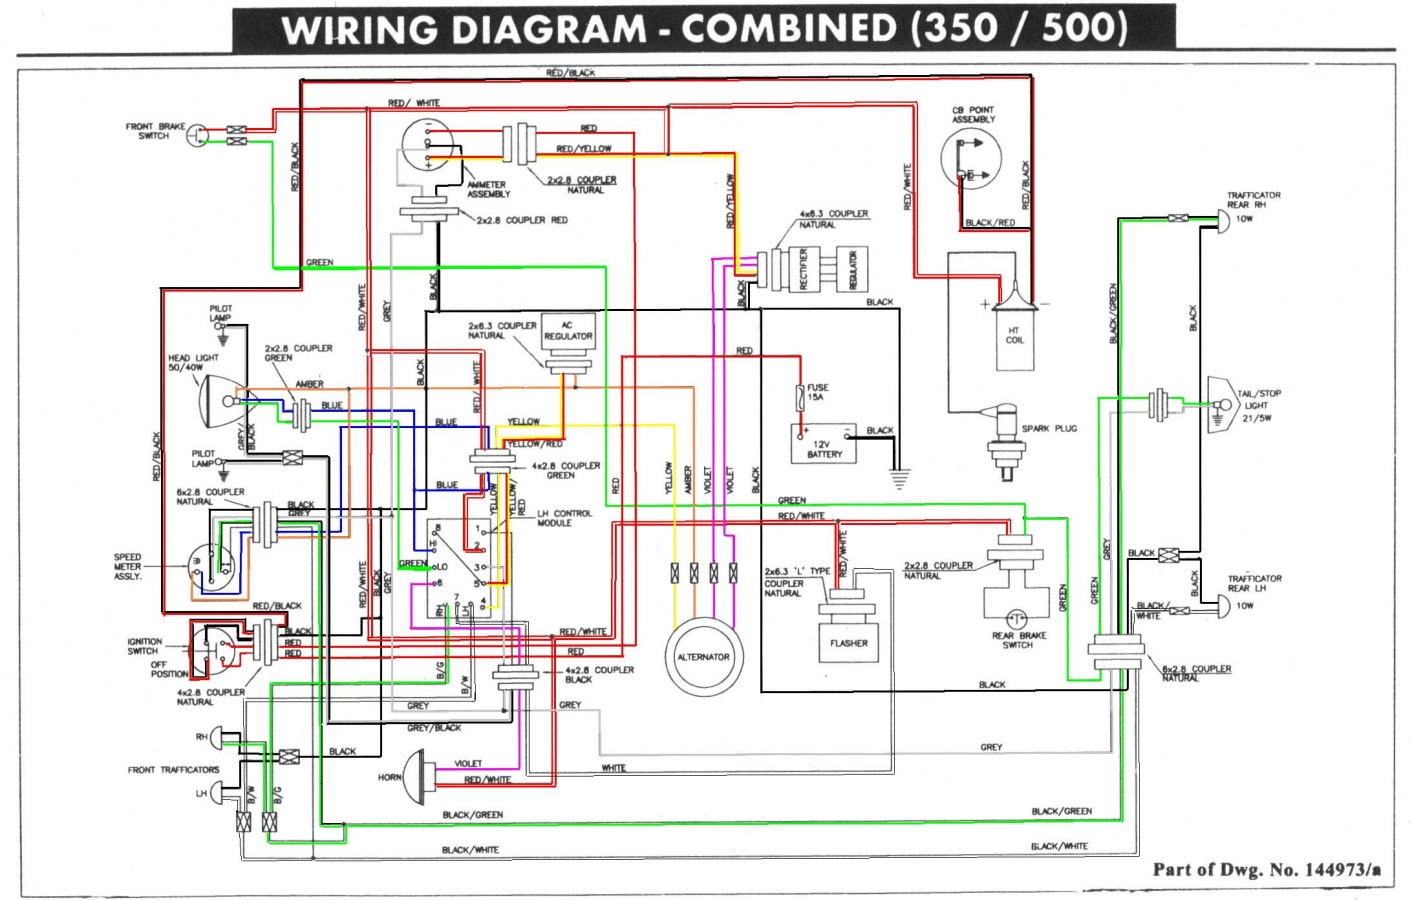 diagrams 875667 royal enfield 350 wiring diagram royal enfield royal enfield wiring diagrams at reclaimingppi.co